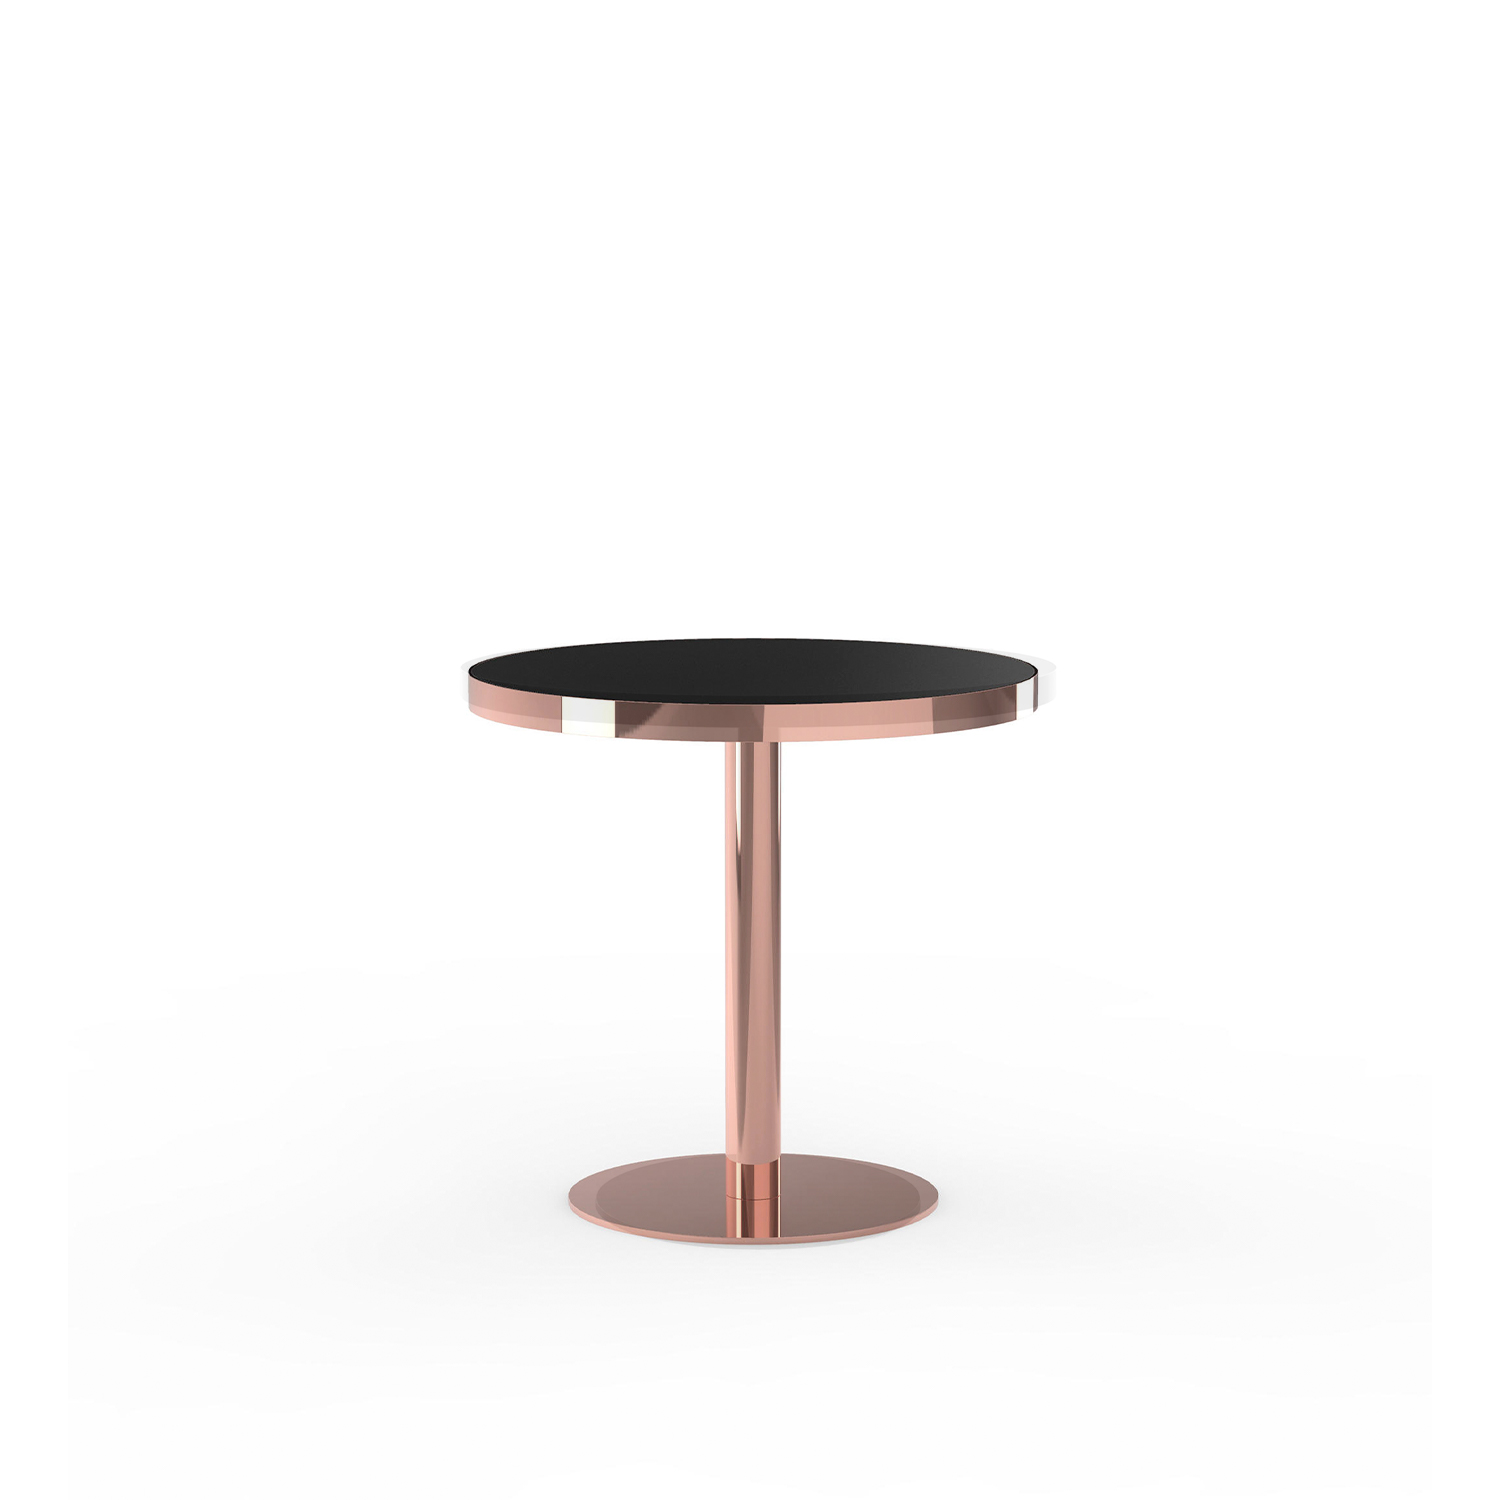 Brandy Bar Table - Bar table available in two heights with metal round base and post, in polished copper or polished brass finishes.. Round top in marble, laminate or natural/stained oak veneer, also available with edge ring in a finish to match the base. | Matter of Stuff